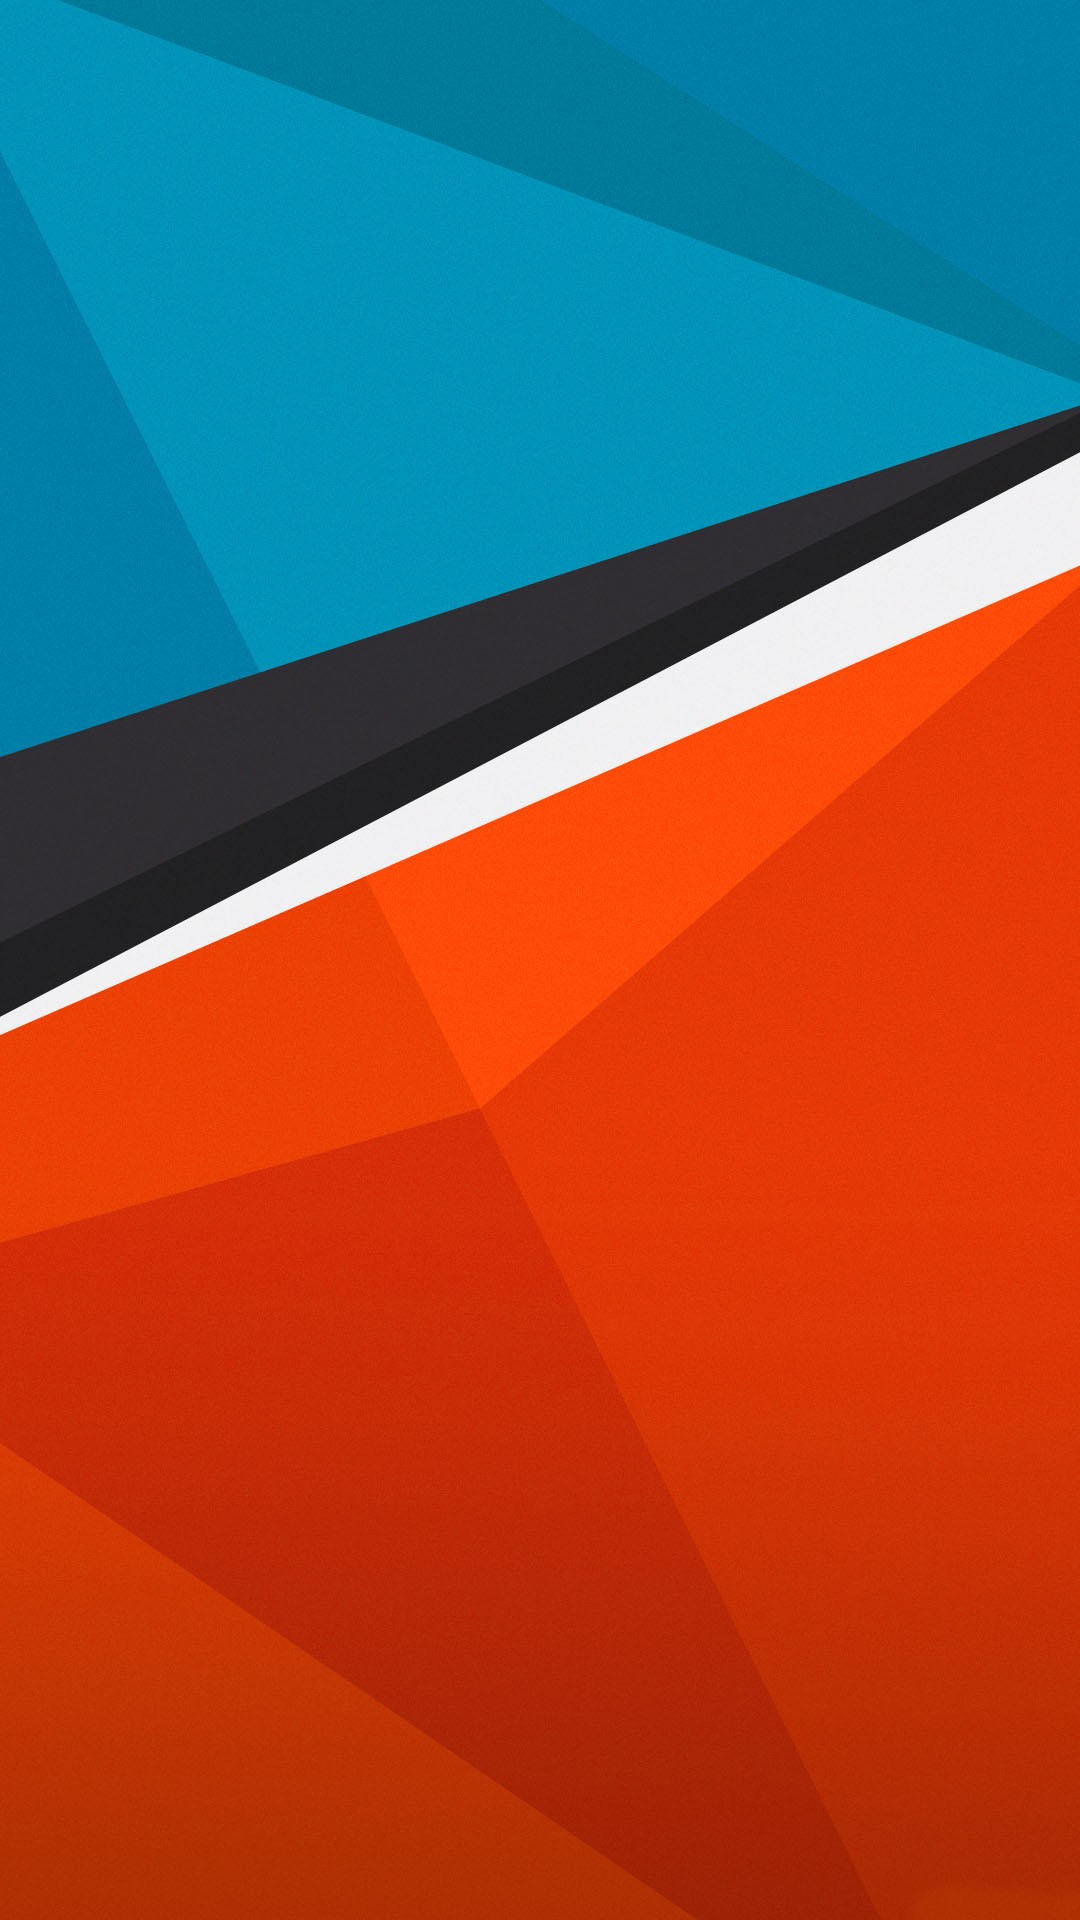 HTC One Wallpapers Blue orange android wallpaper Android Wallpapers 1080x1920